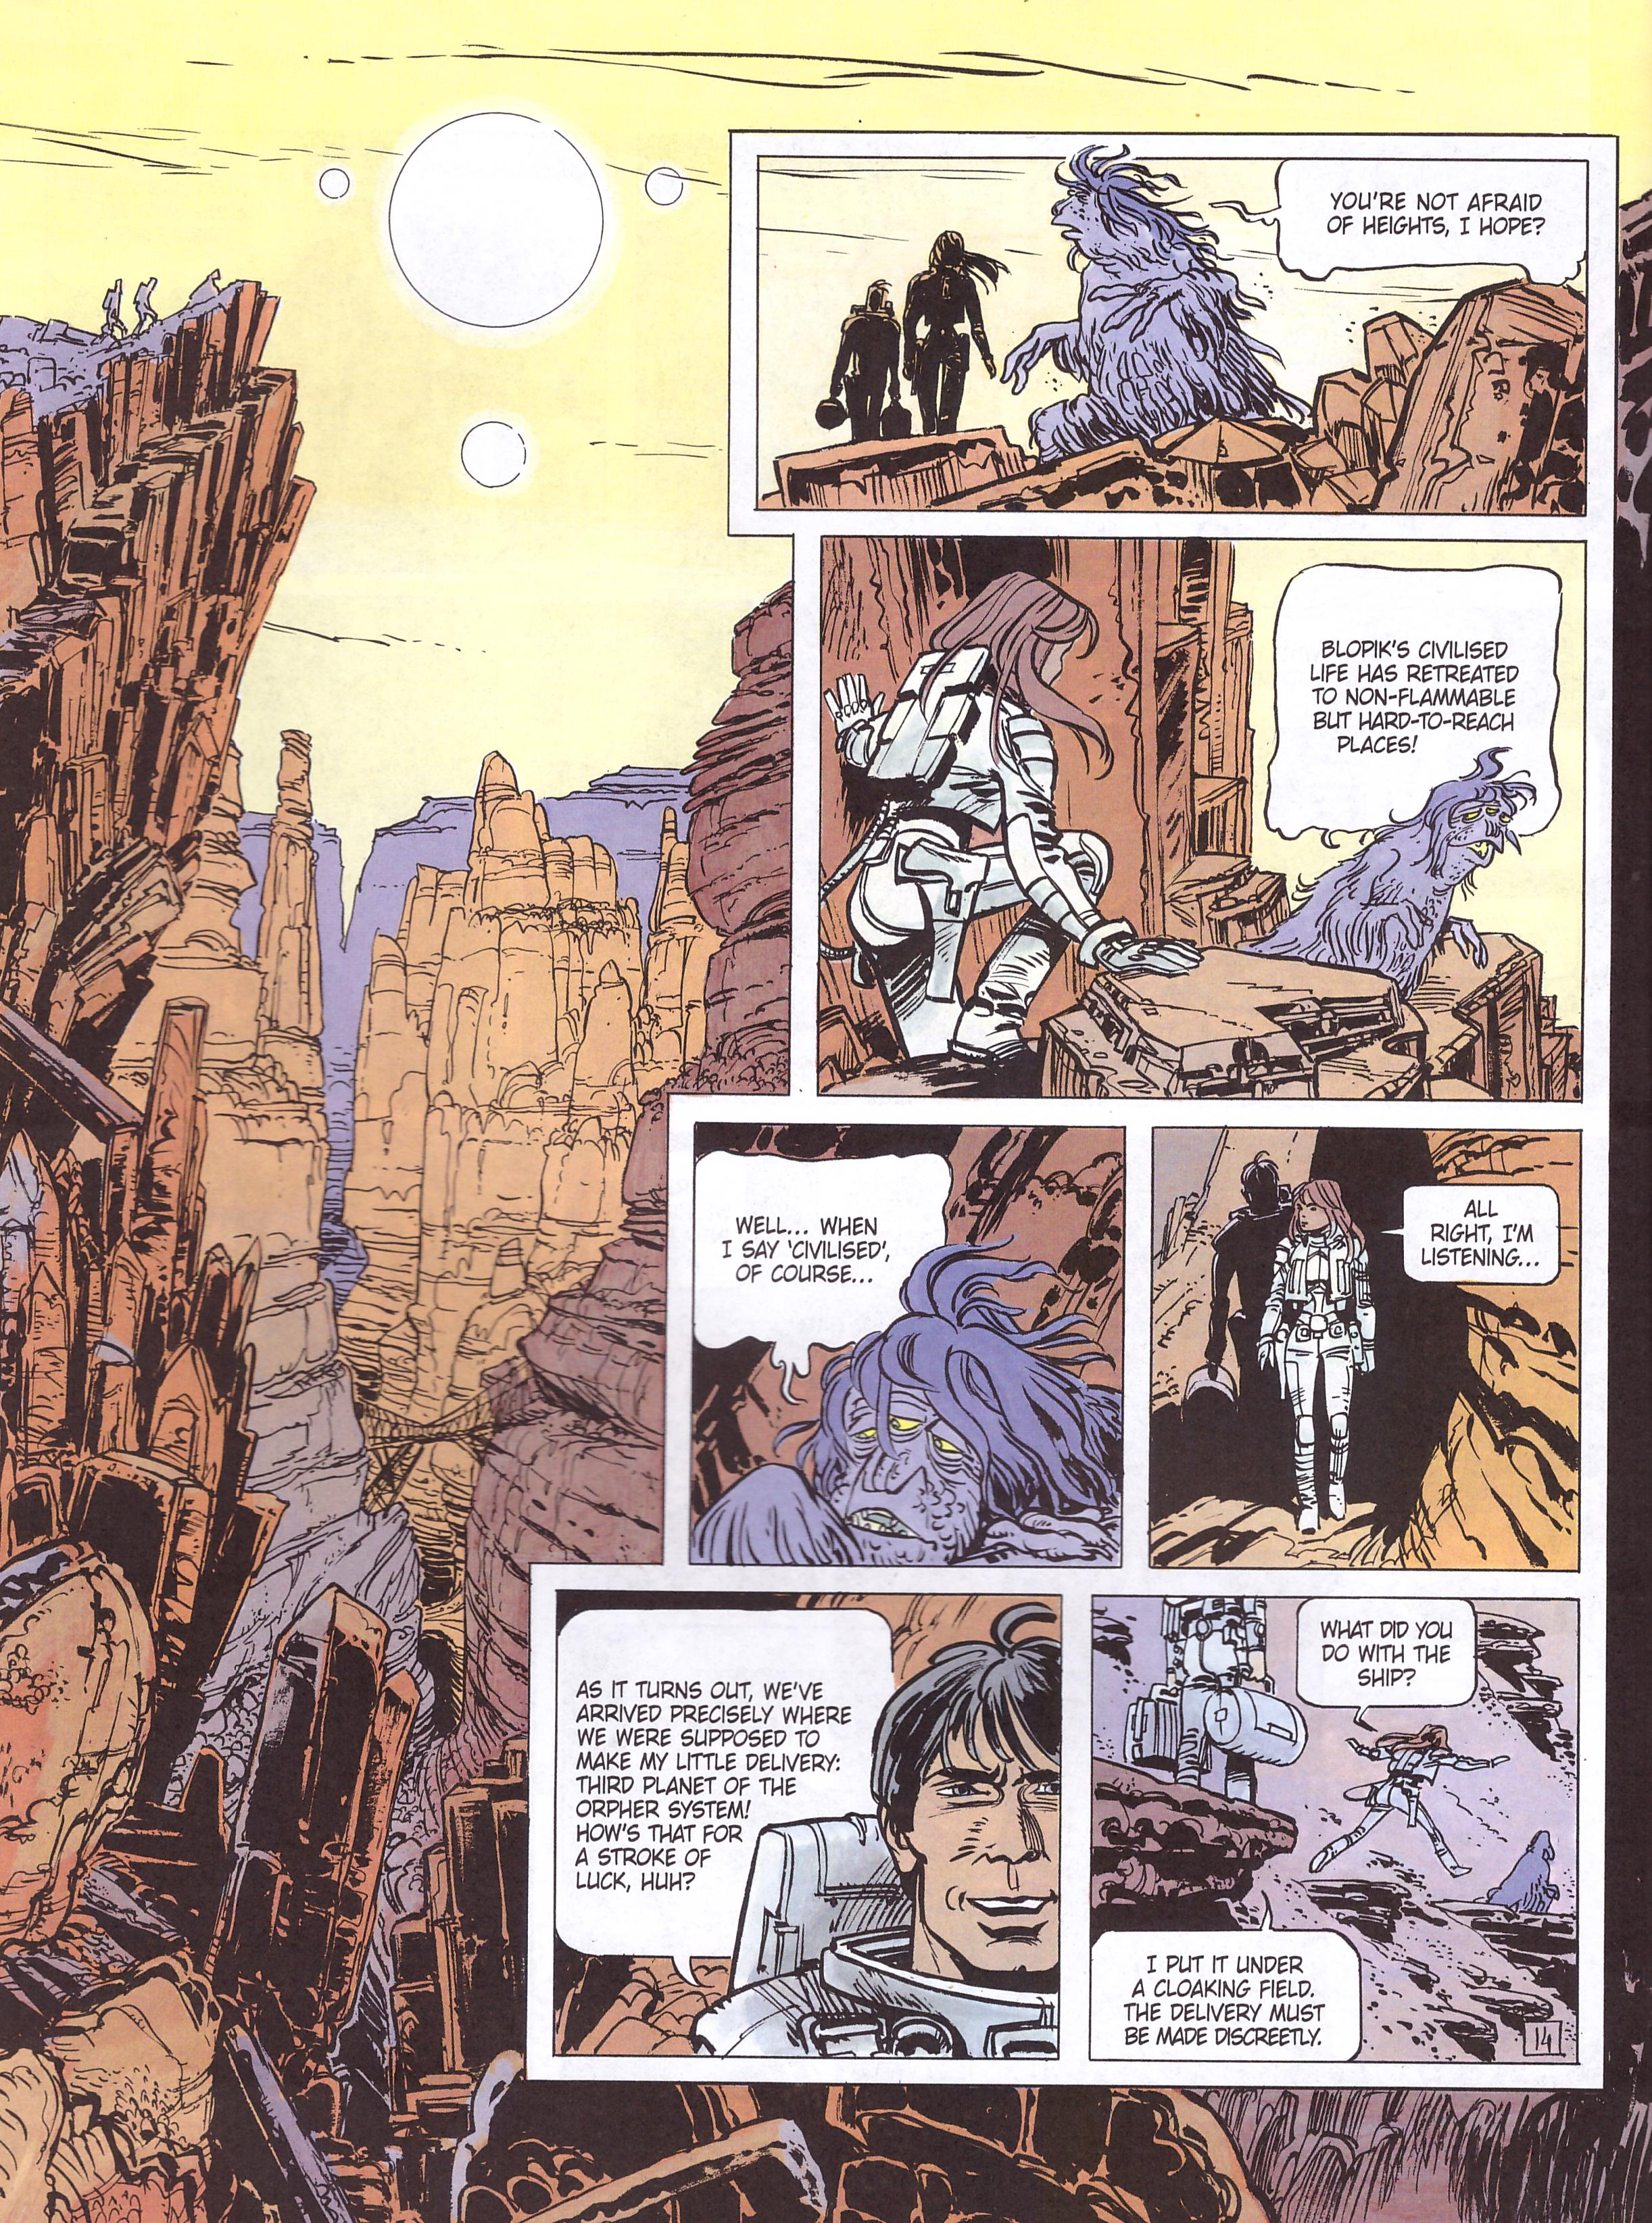 Valerian and Laureline The Living Weapons review